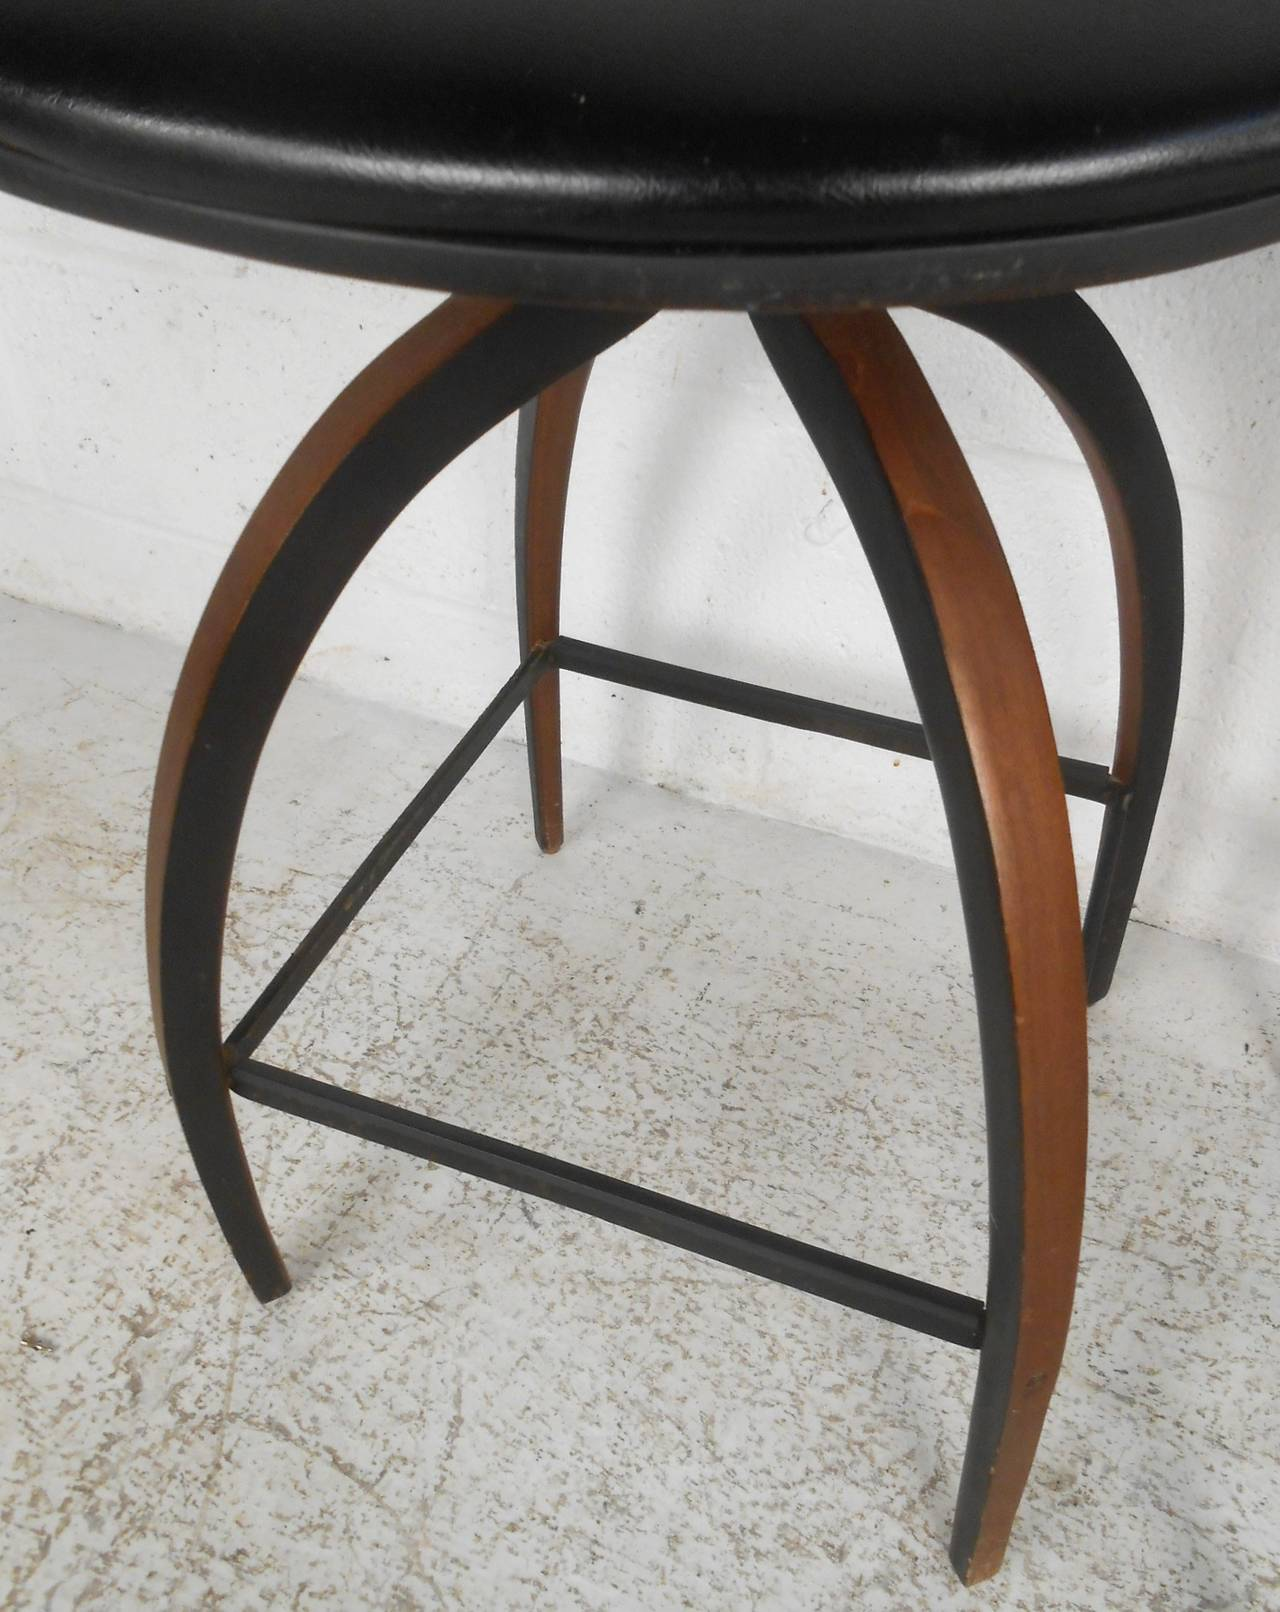 Pair of mid century modern plycraft bar stools by norman cherner at